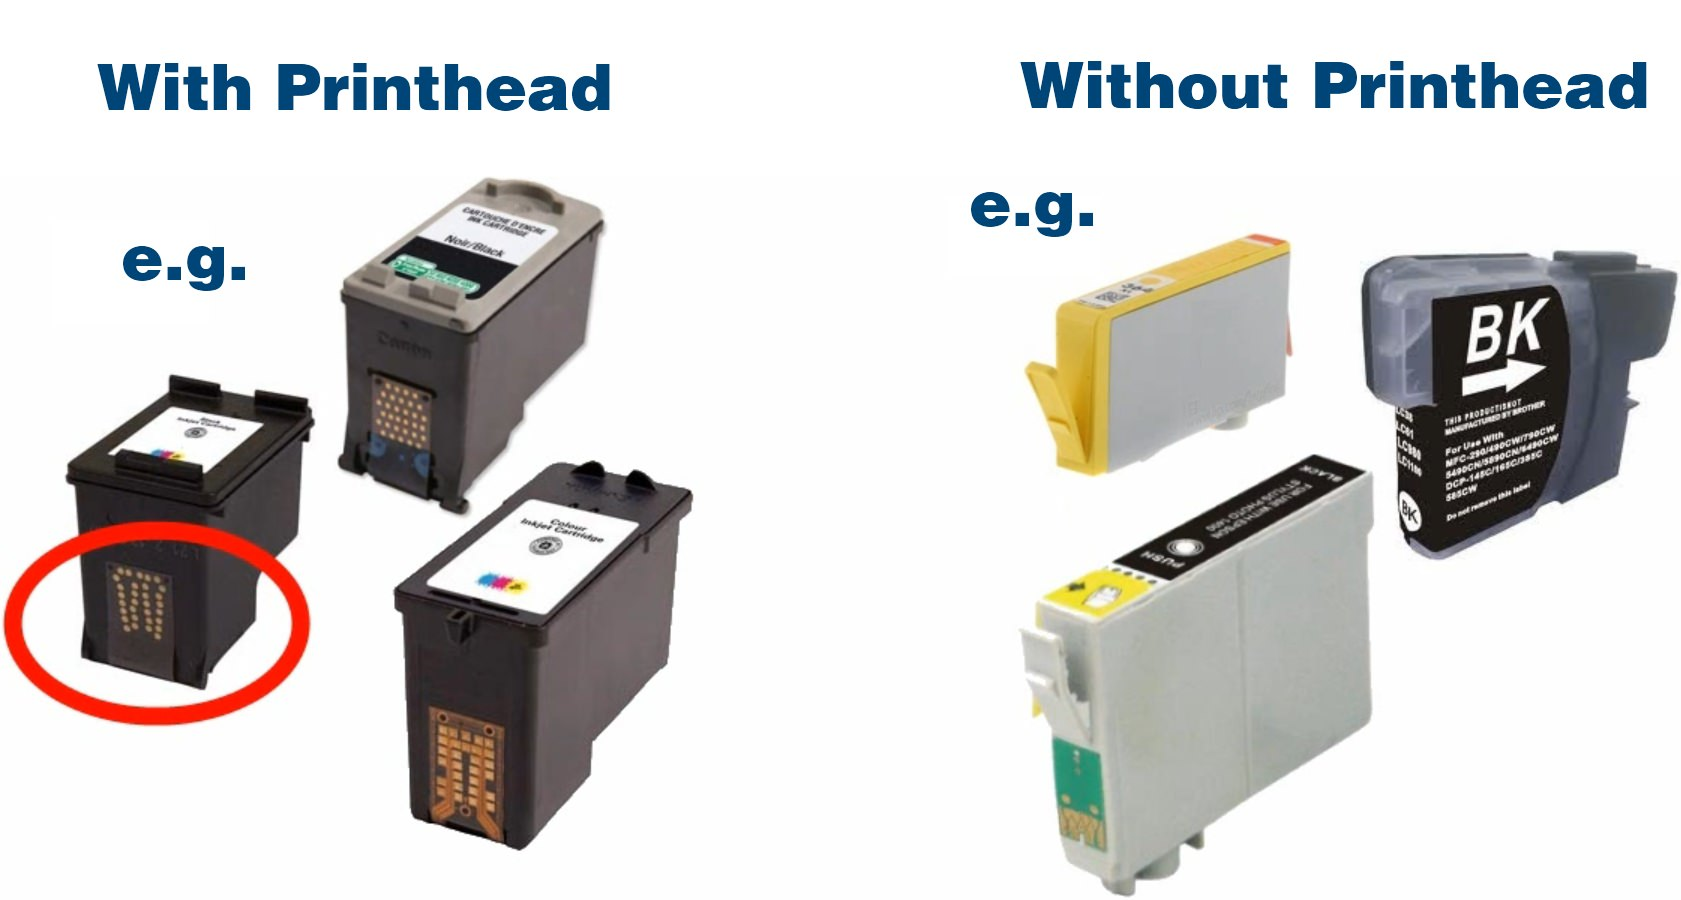 Depending Strongly Upon The Type Of Printer You Own May Be Able To Continue Printing With An Empty Cartridge Installed Or By Indicating